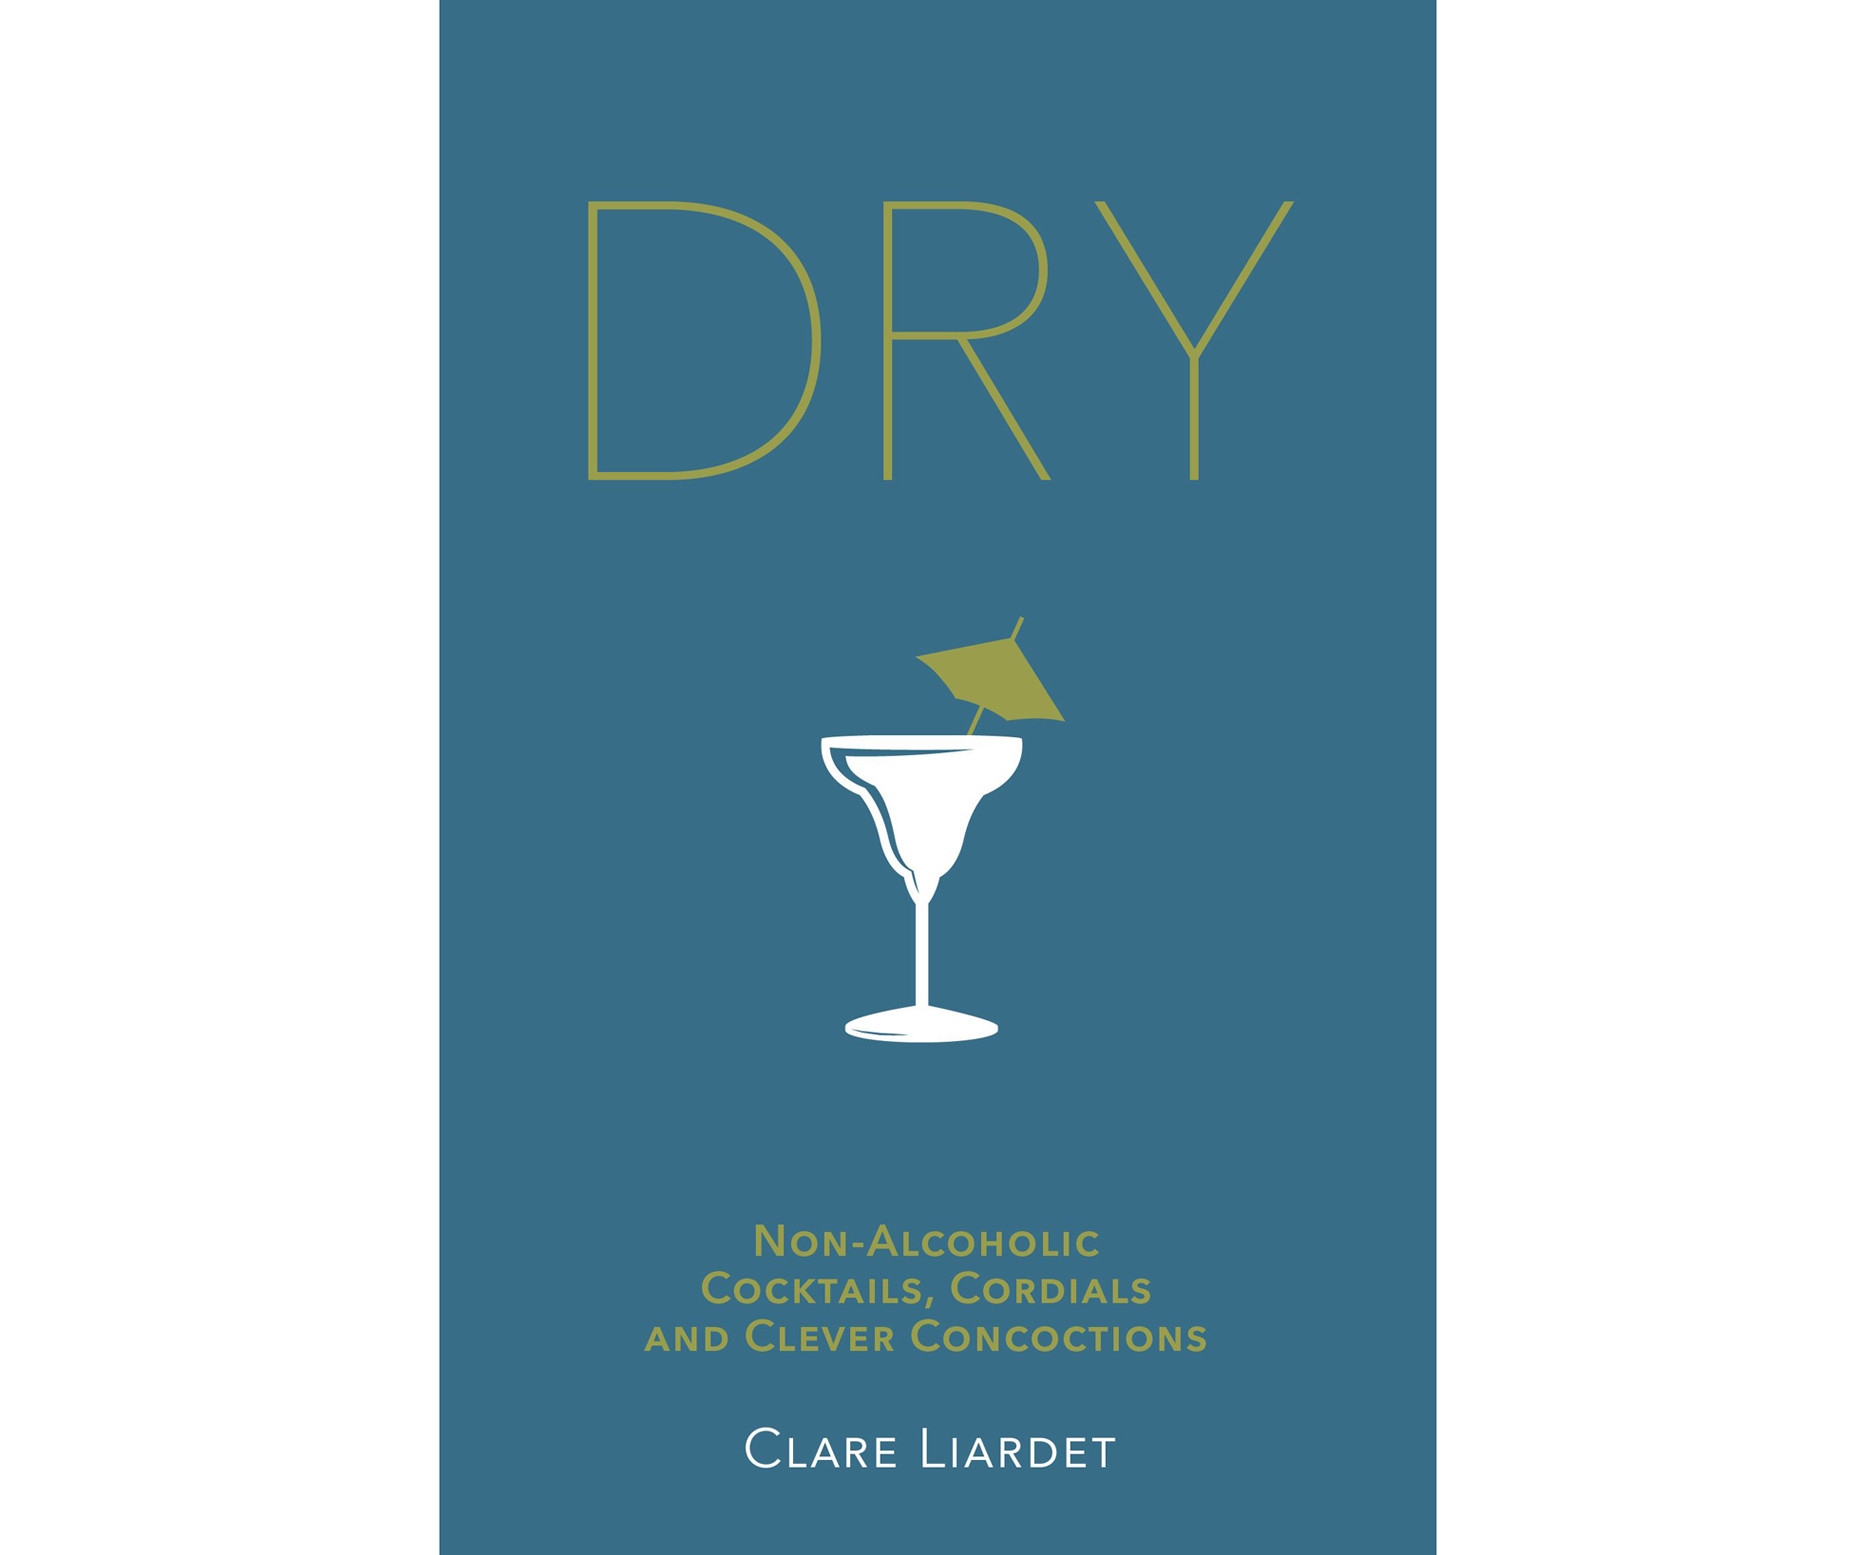 Book cover of Dry: Non-Alcoholic Cocktails